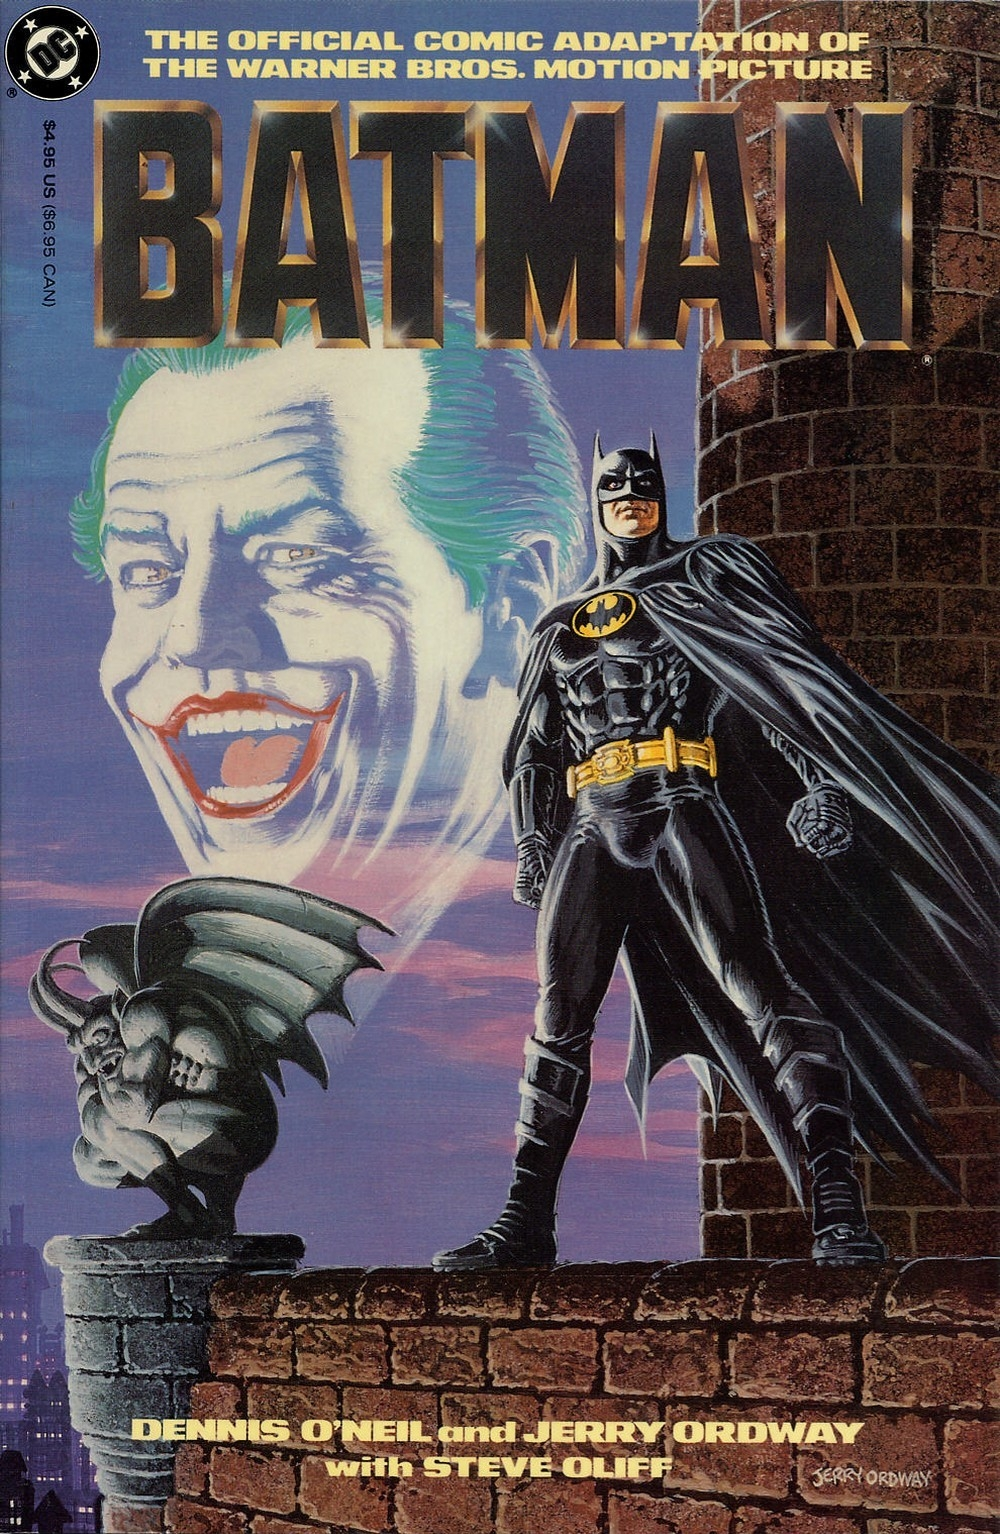 BatmanMovie1989ComicAdaptation.jpg